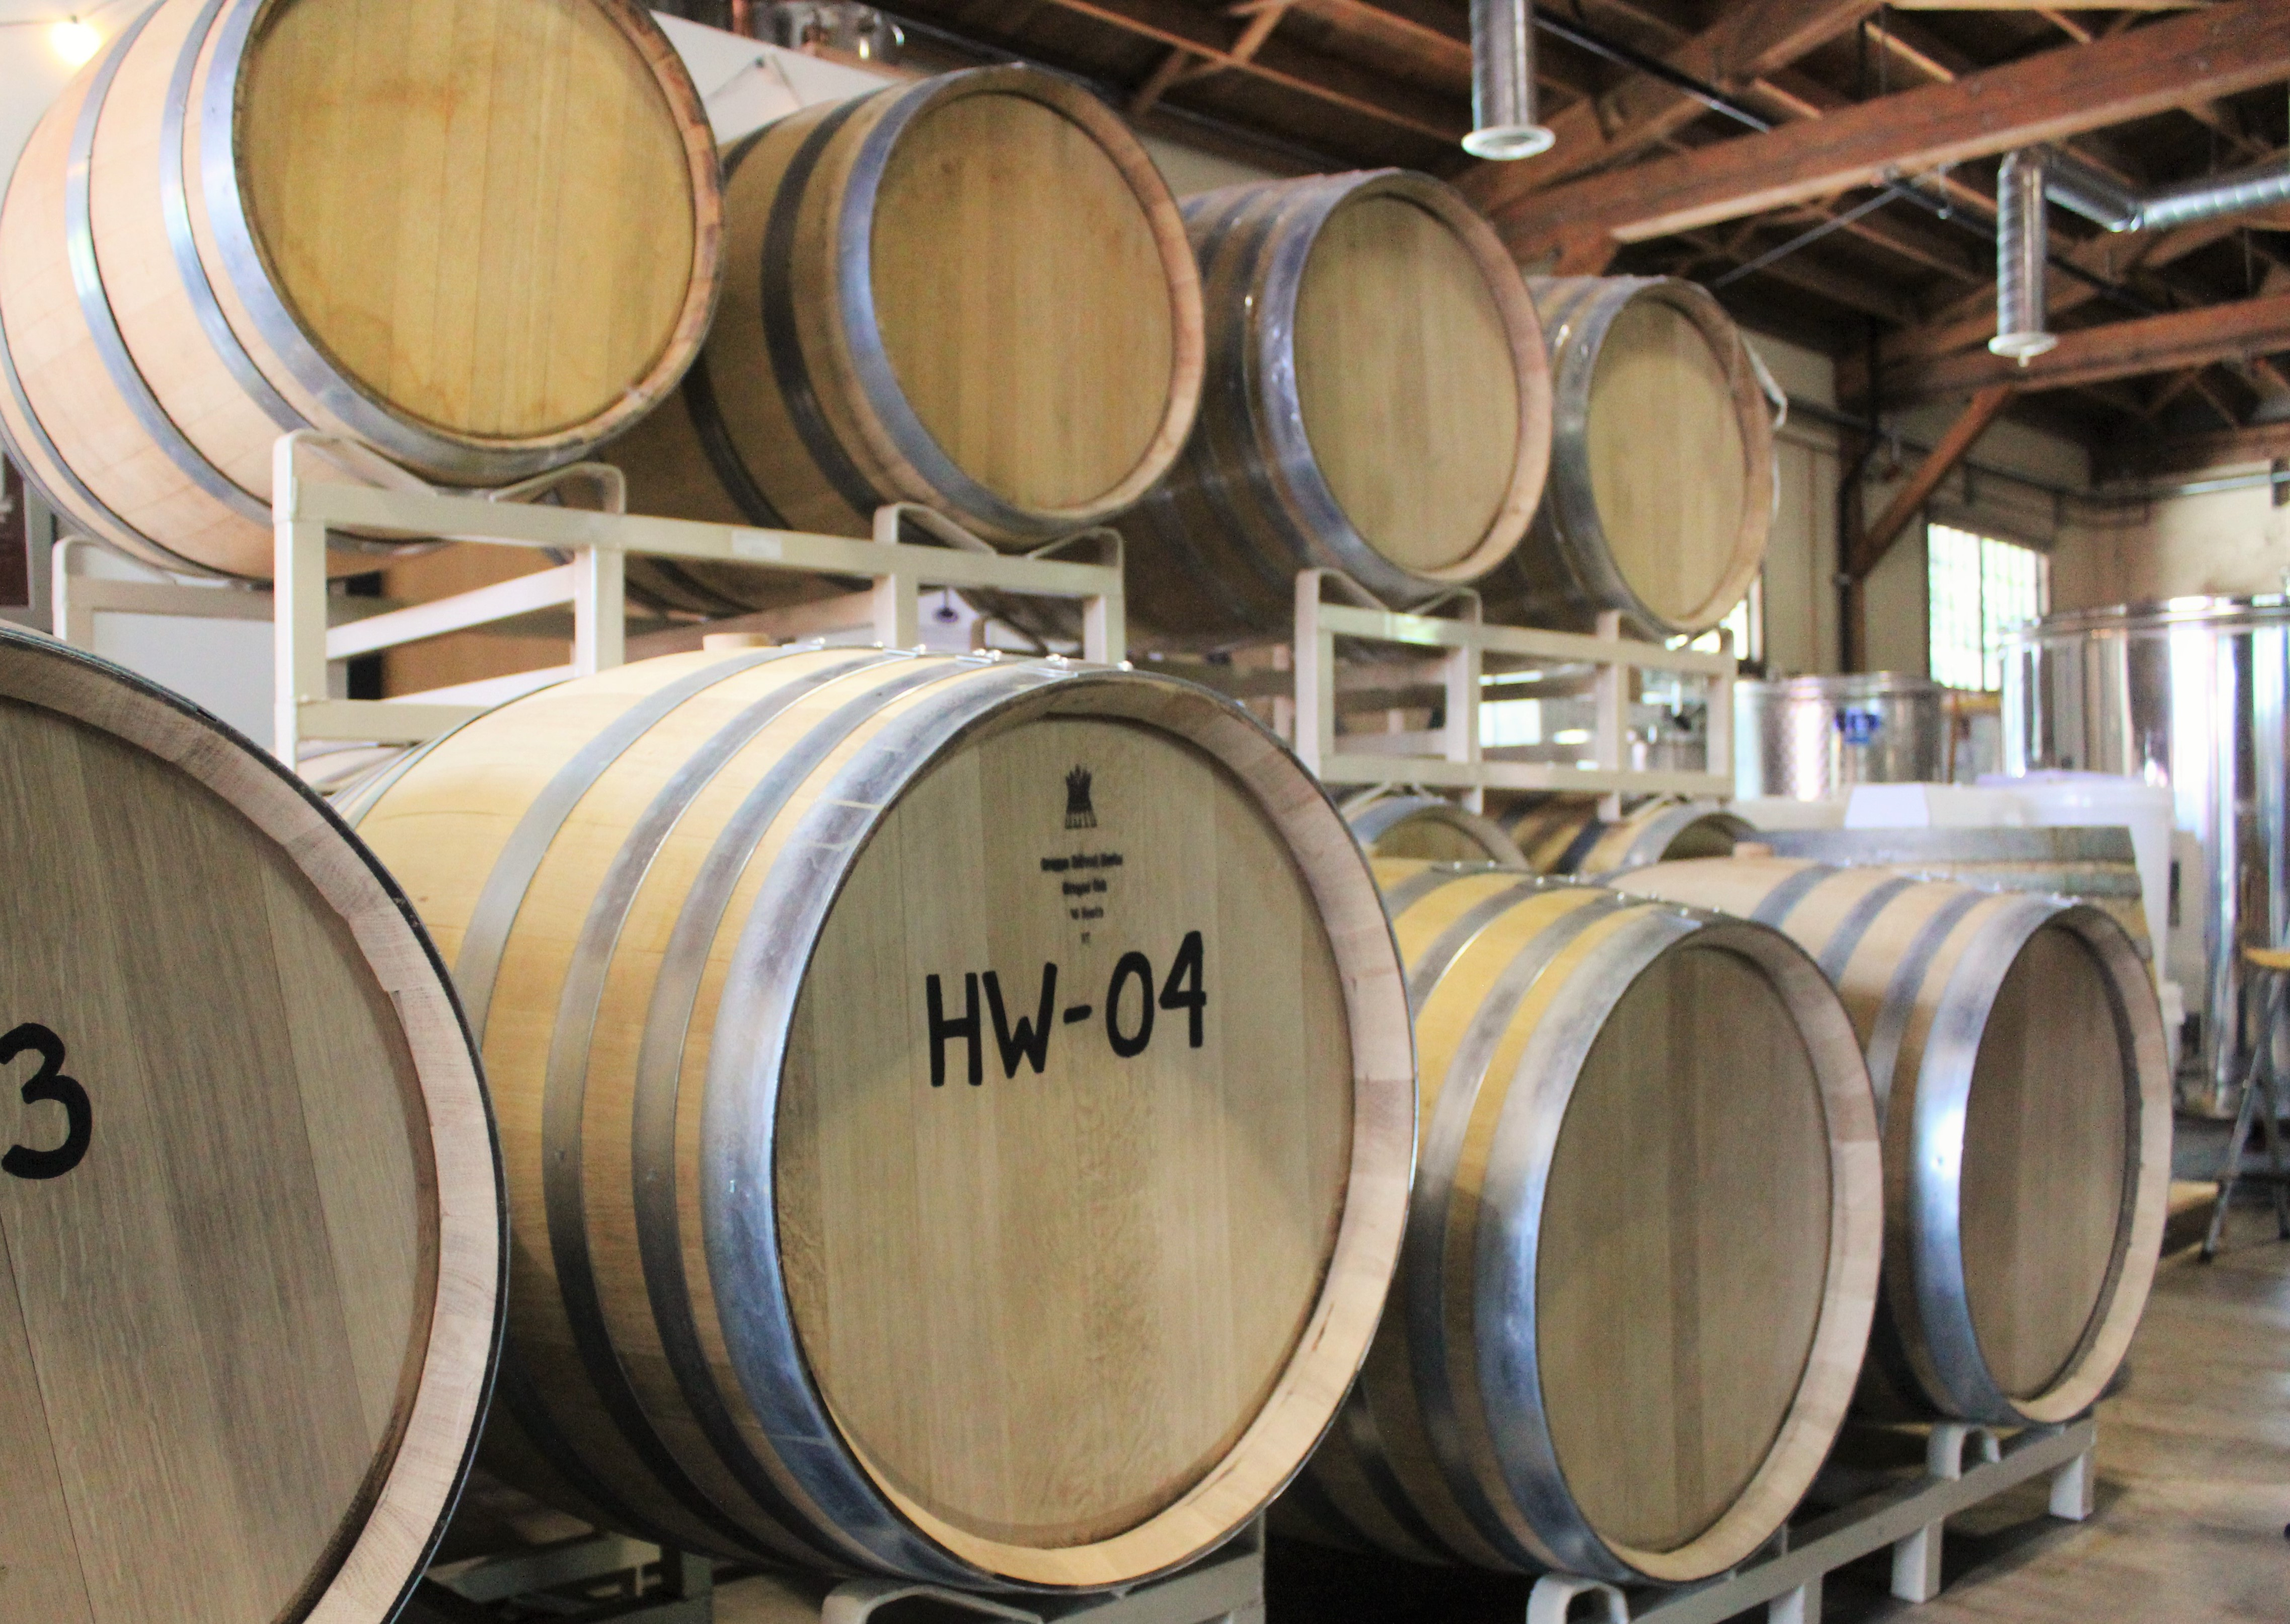 Barrels for Aging photo by Carrie Uffindell